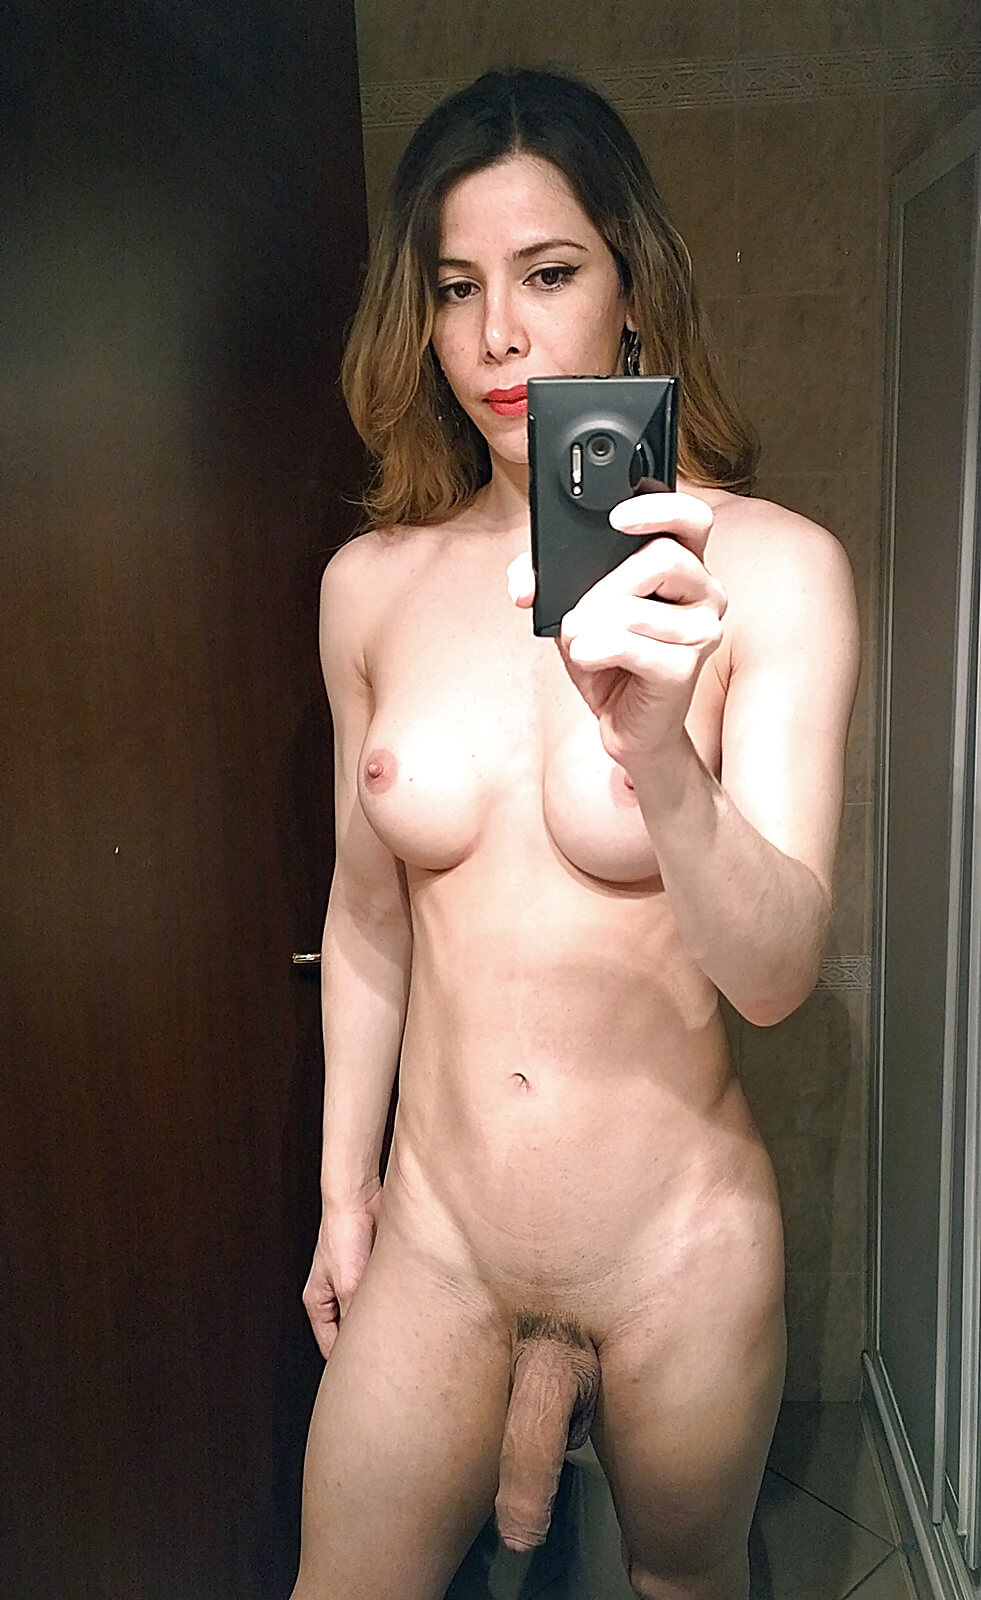 shemale selfie nude trans